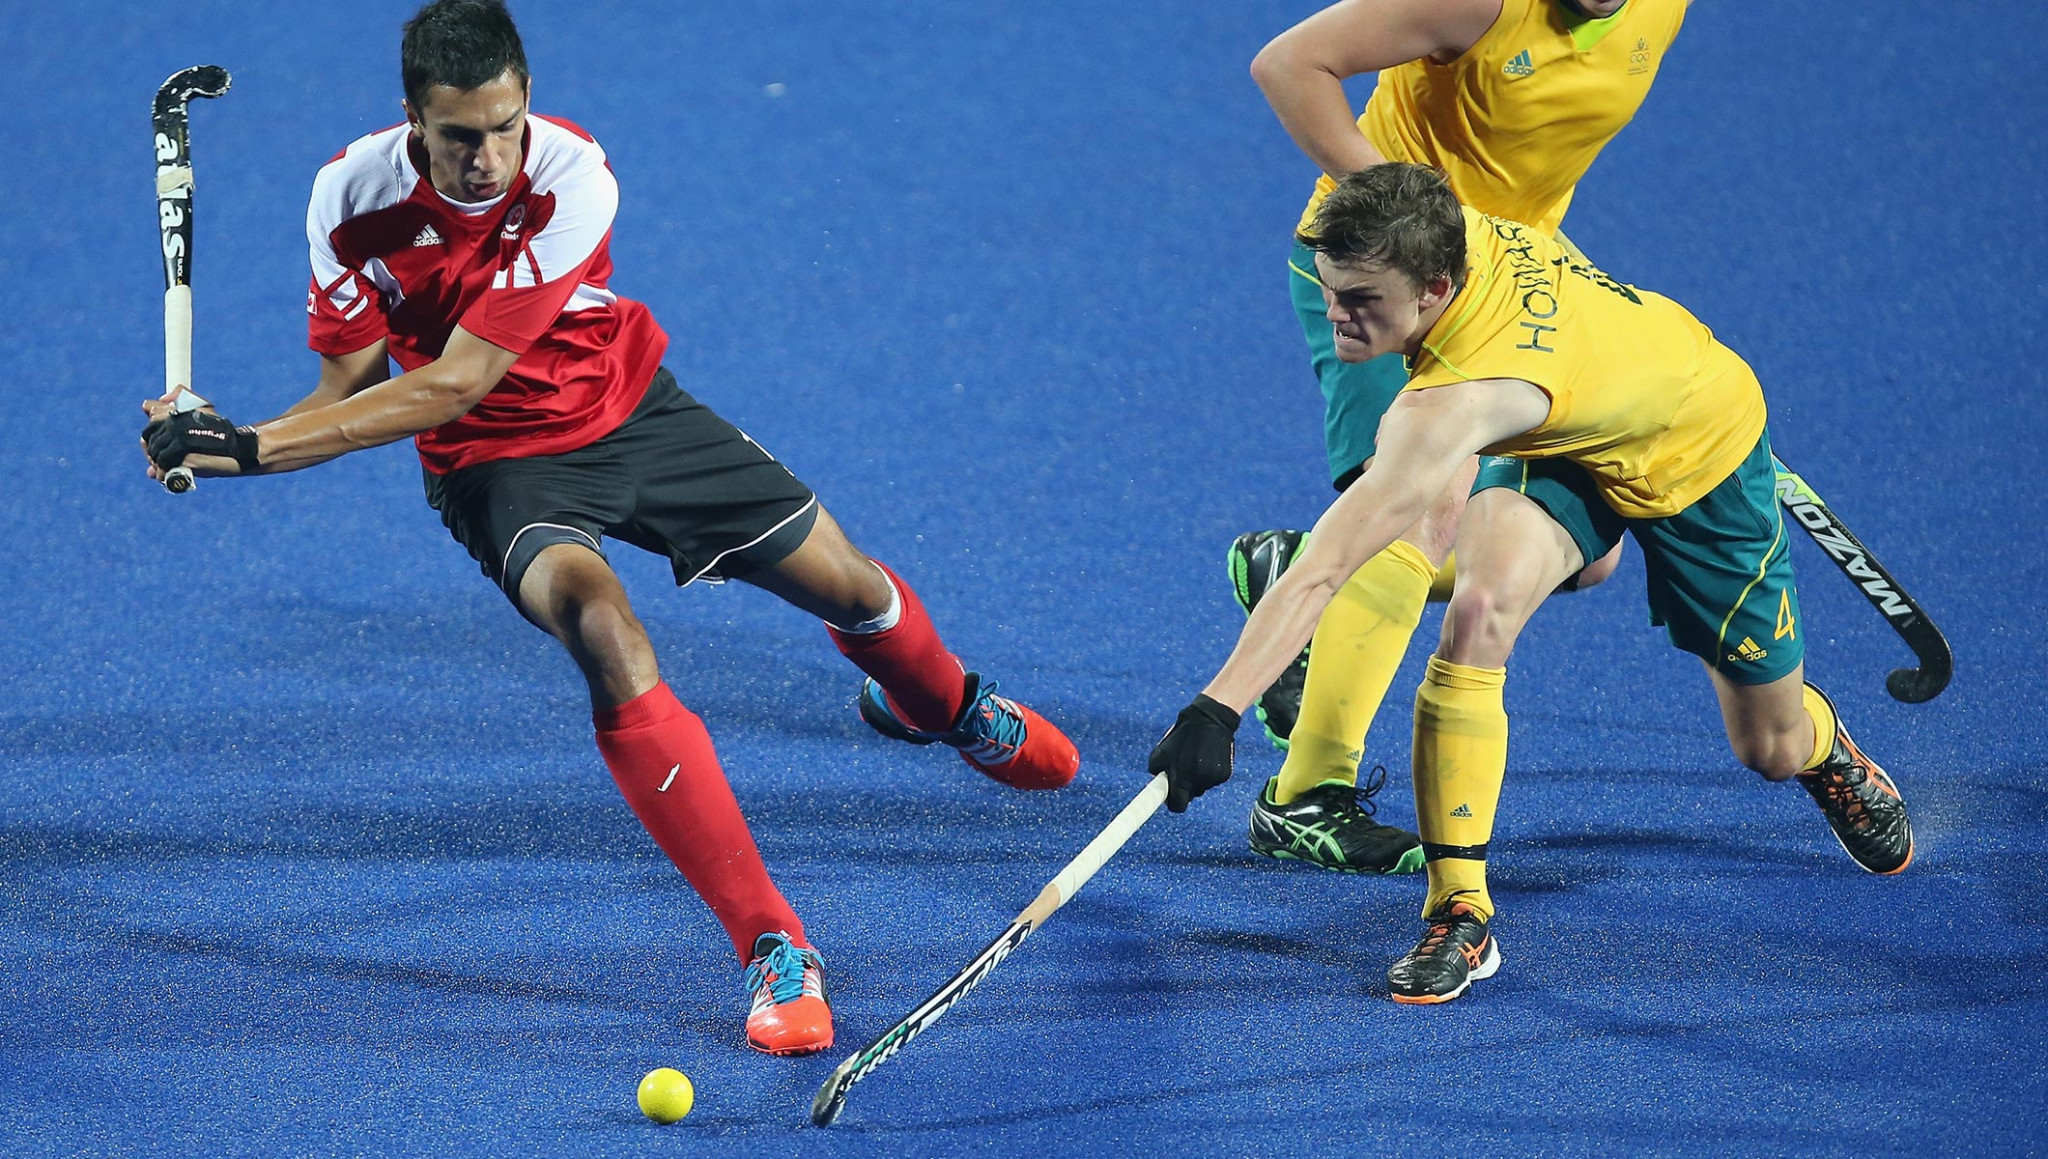 The FIH are hopeful the shorter 5s format at the Buenos Aires 2018 Youth Olympic Games will lead to increased participation levels ©Getty Images